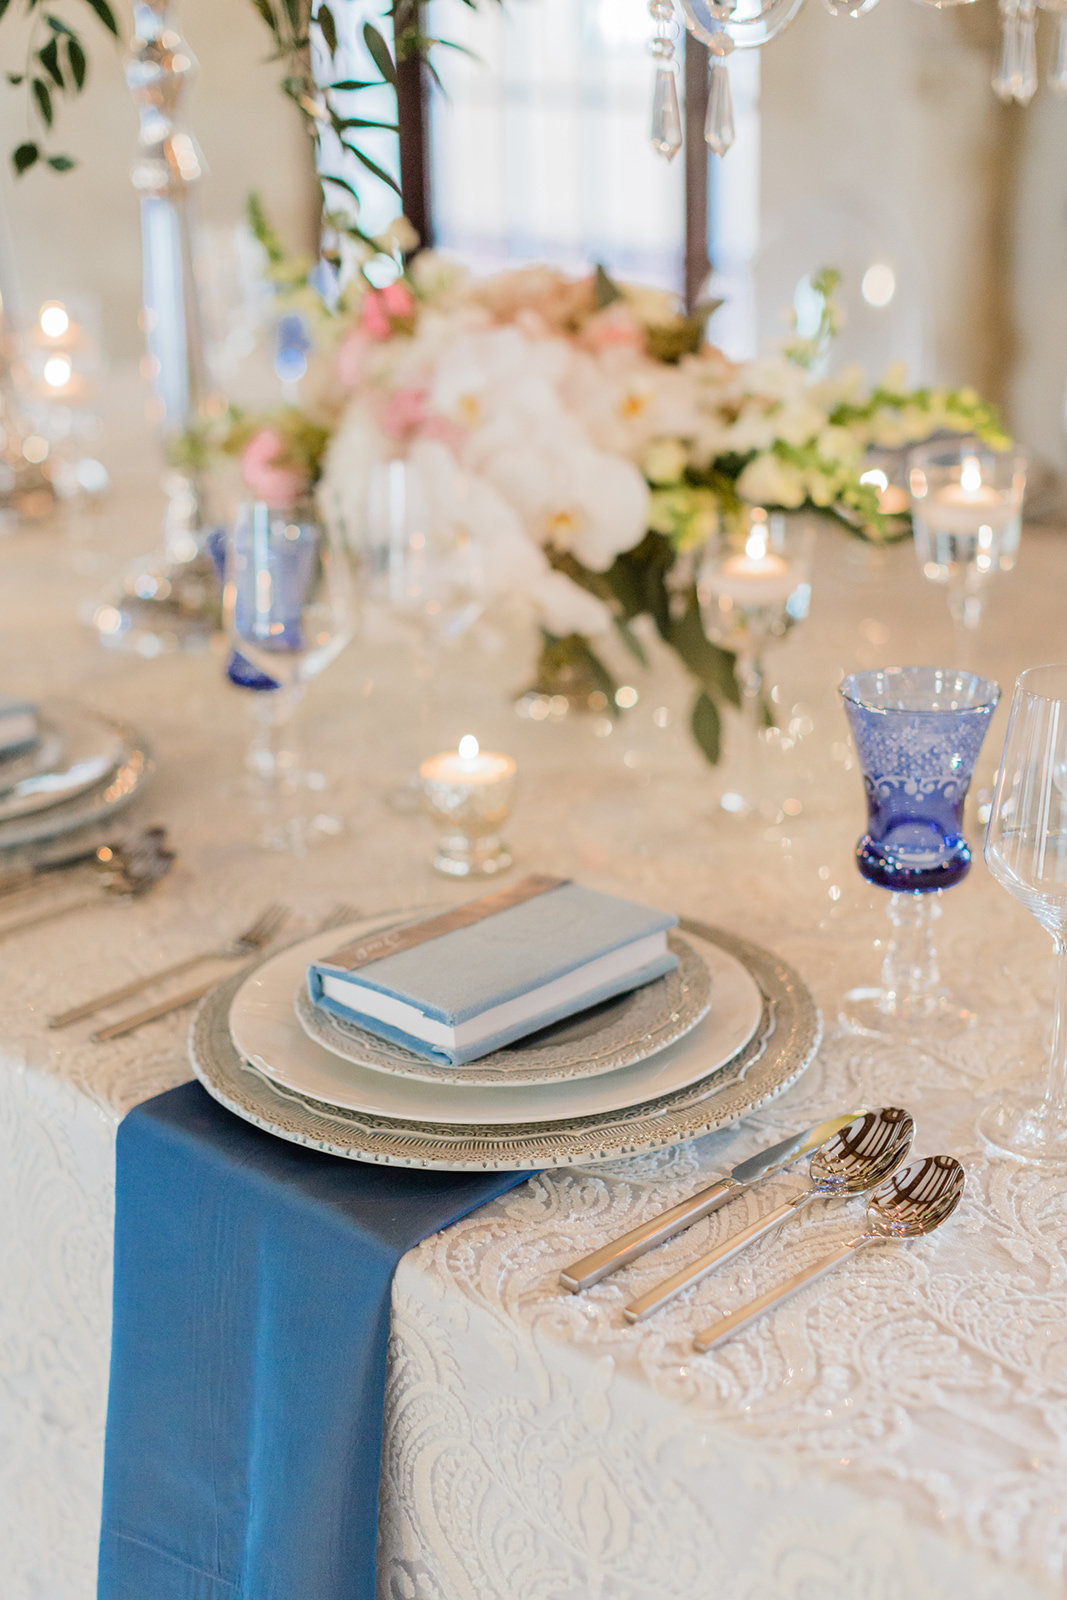 Elegant La Tavola Lace linens and Arte Italica Chargers and Water Glasses